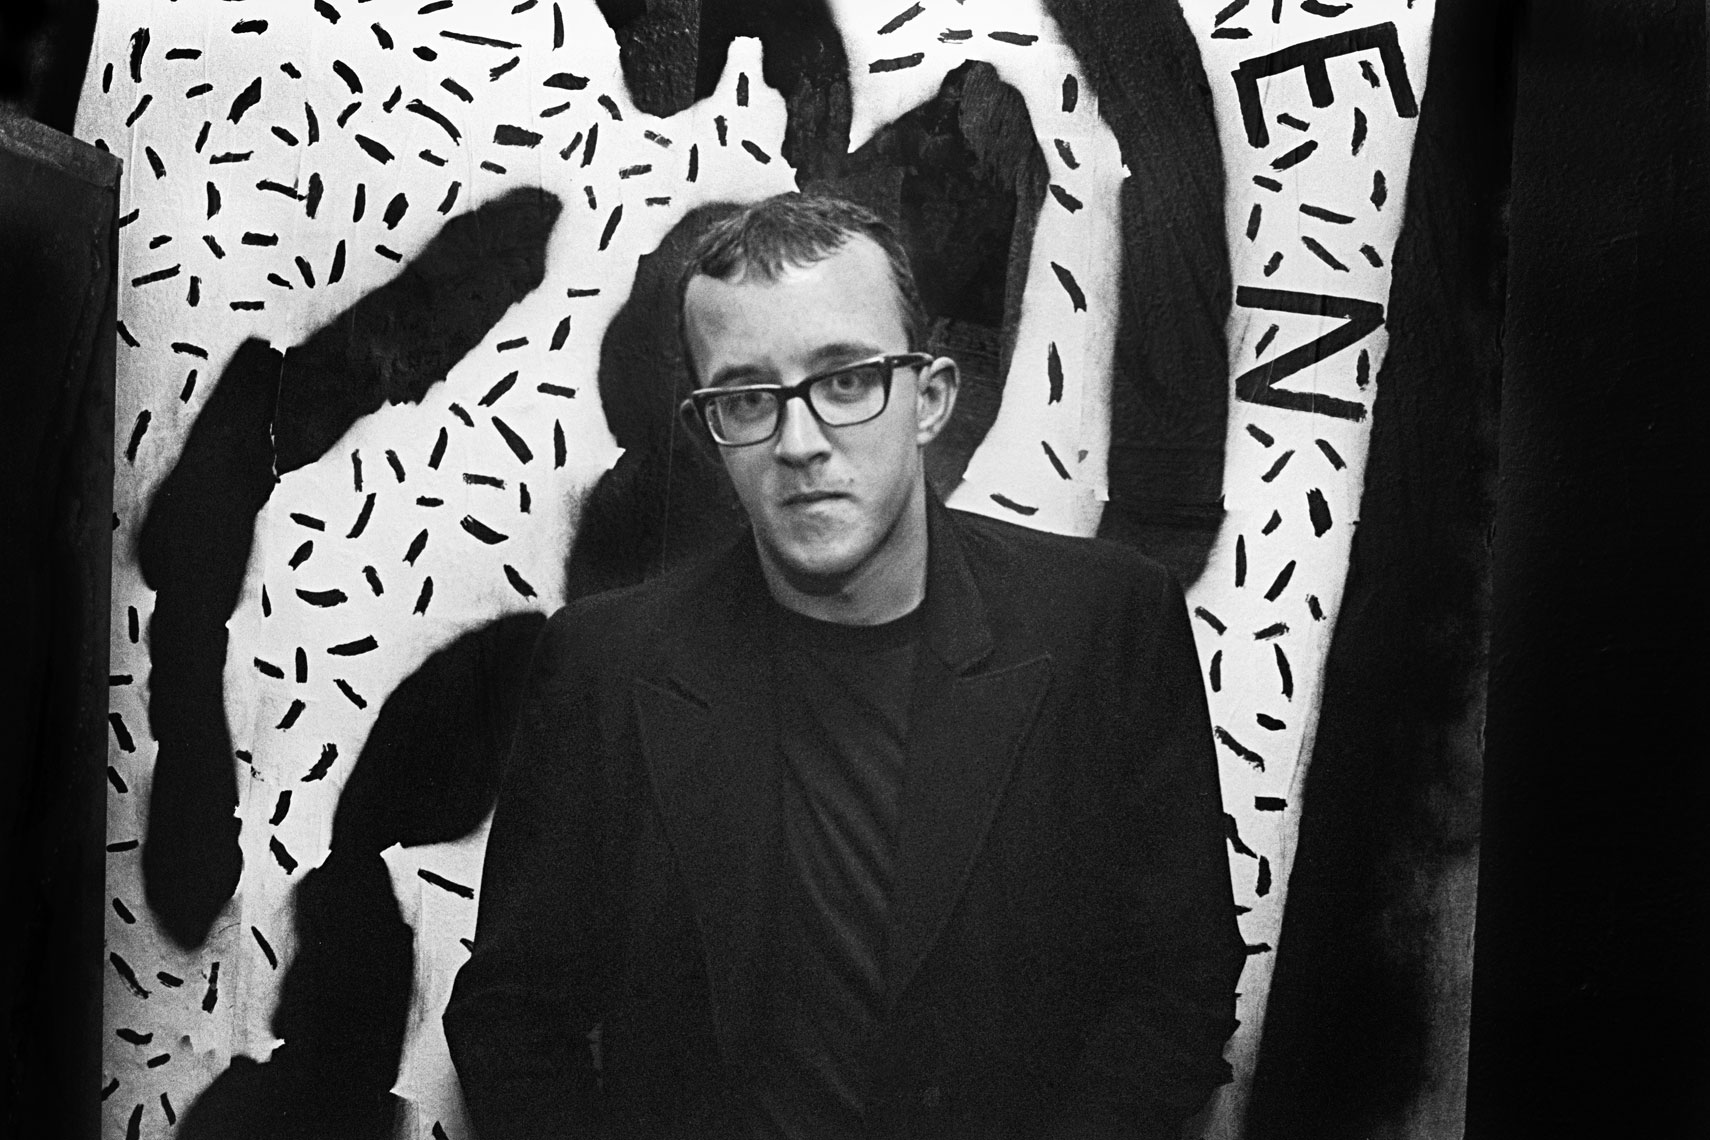 049_Club57_Acts-of-Live-Art_Keith-Haring_0680.jpg